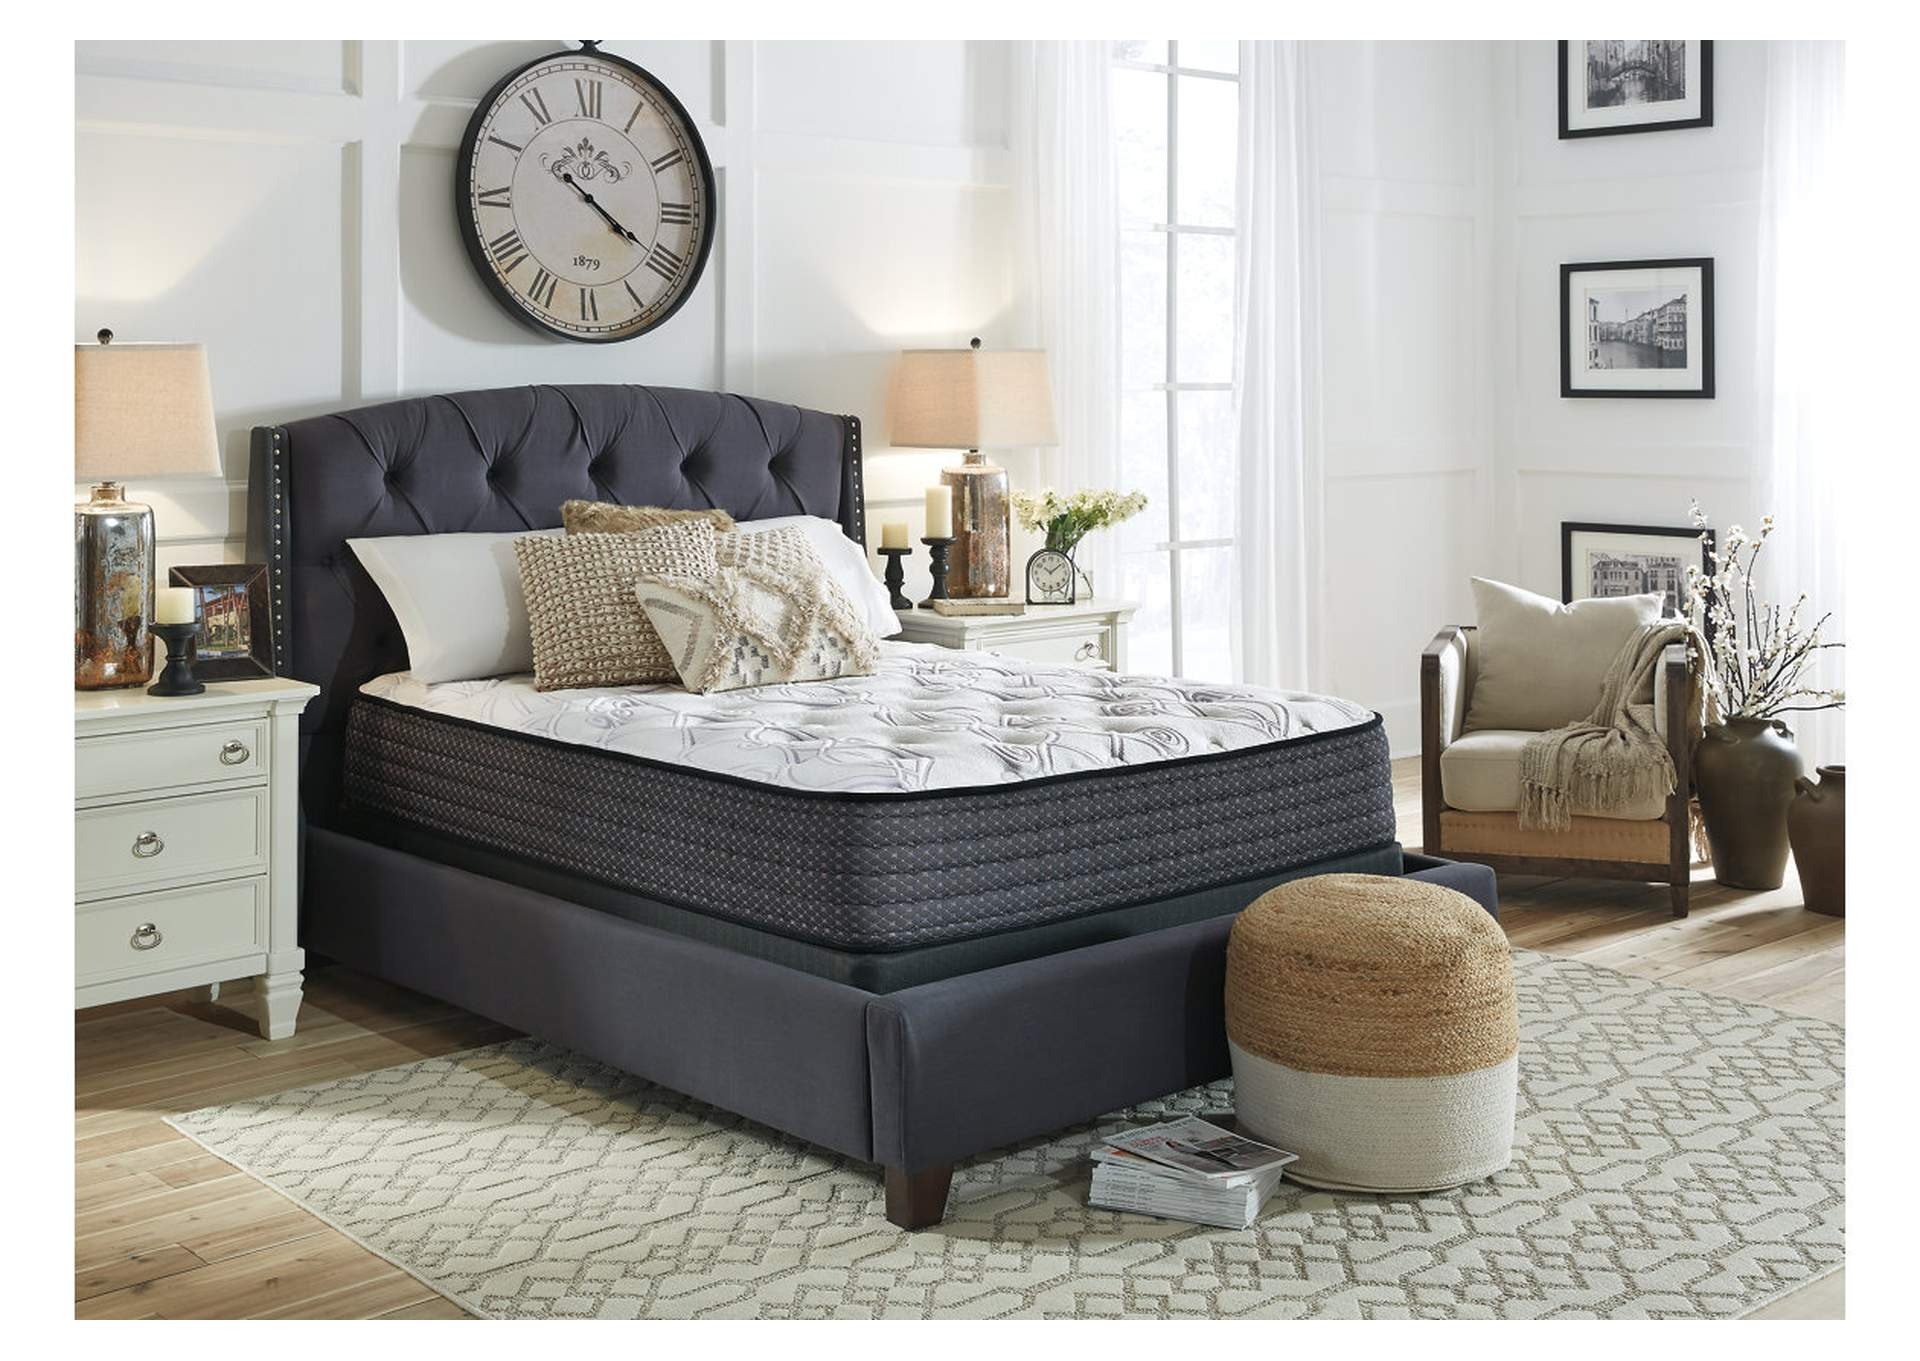 Limited Edition Plush California King Mattress,Sierra Sleep by Ashley